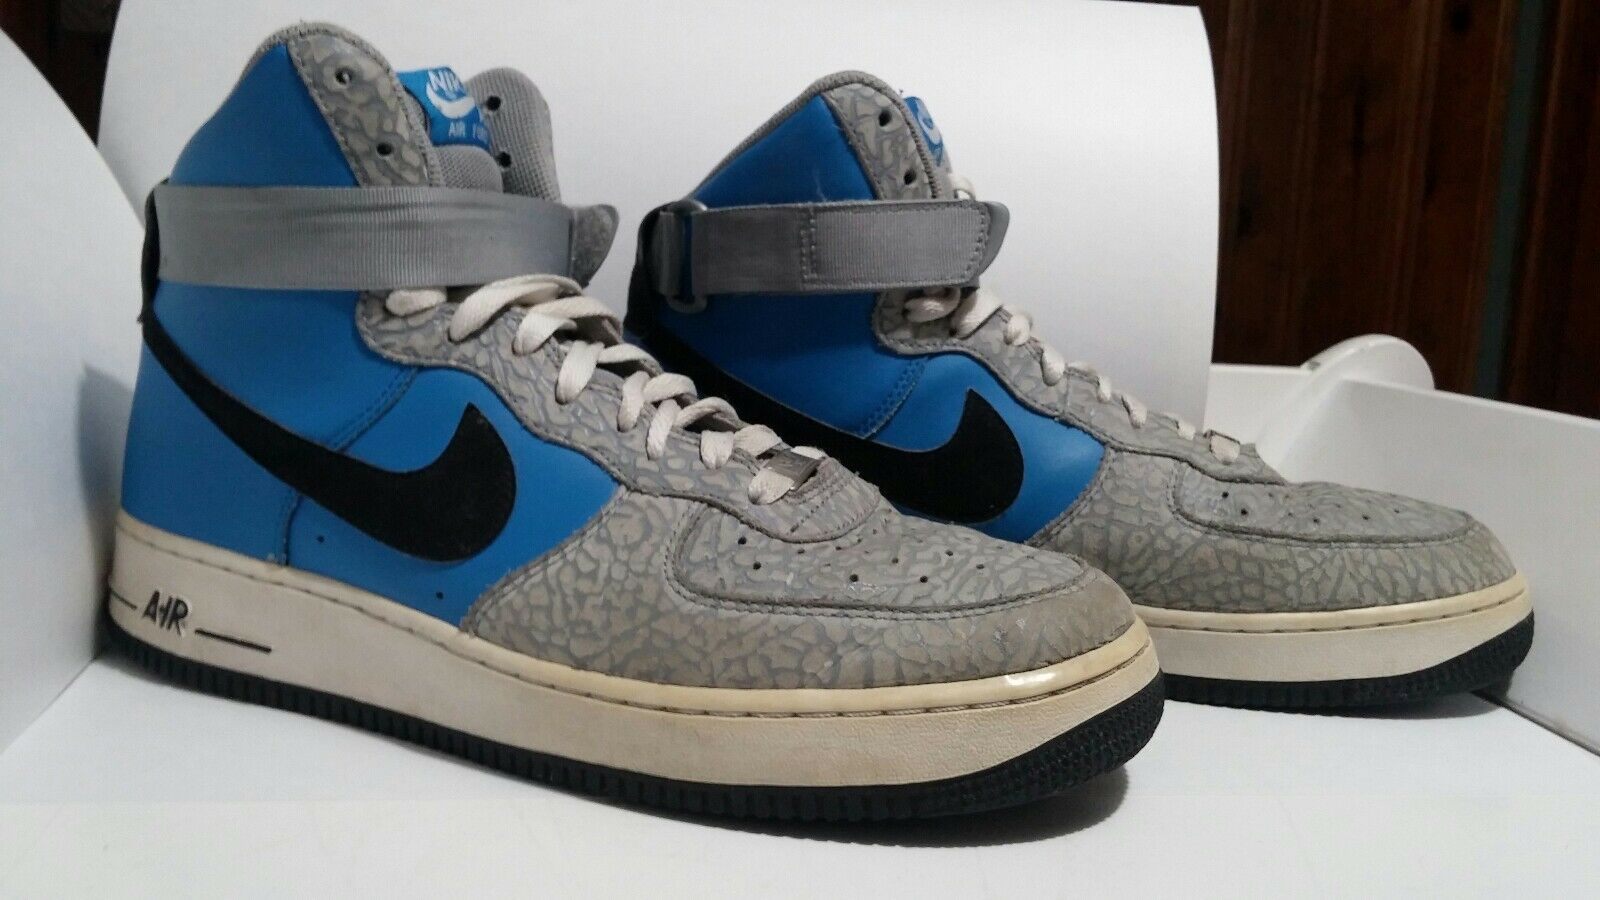 Nike Air Force 1 Blue/Grey Elephant Print Men's 10.5 Shoes RARE